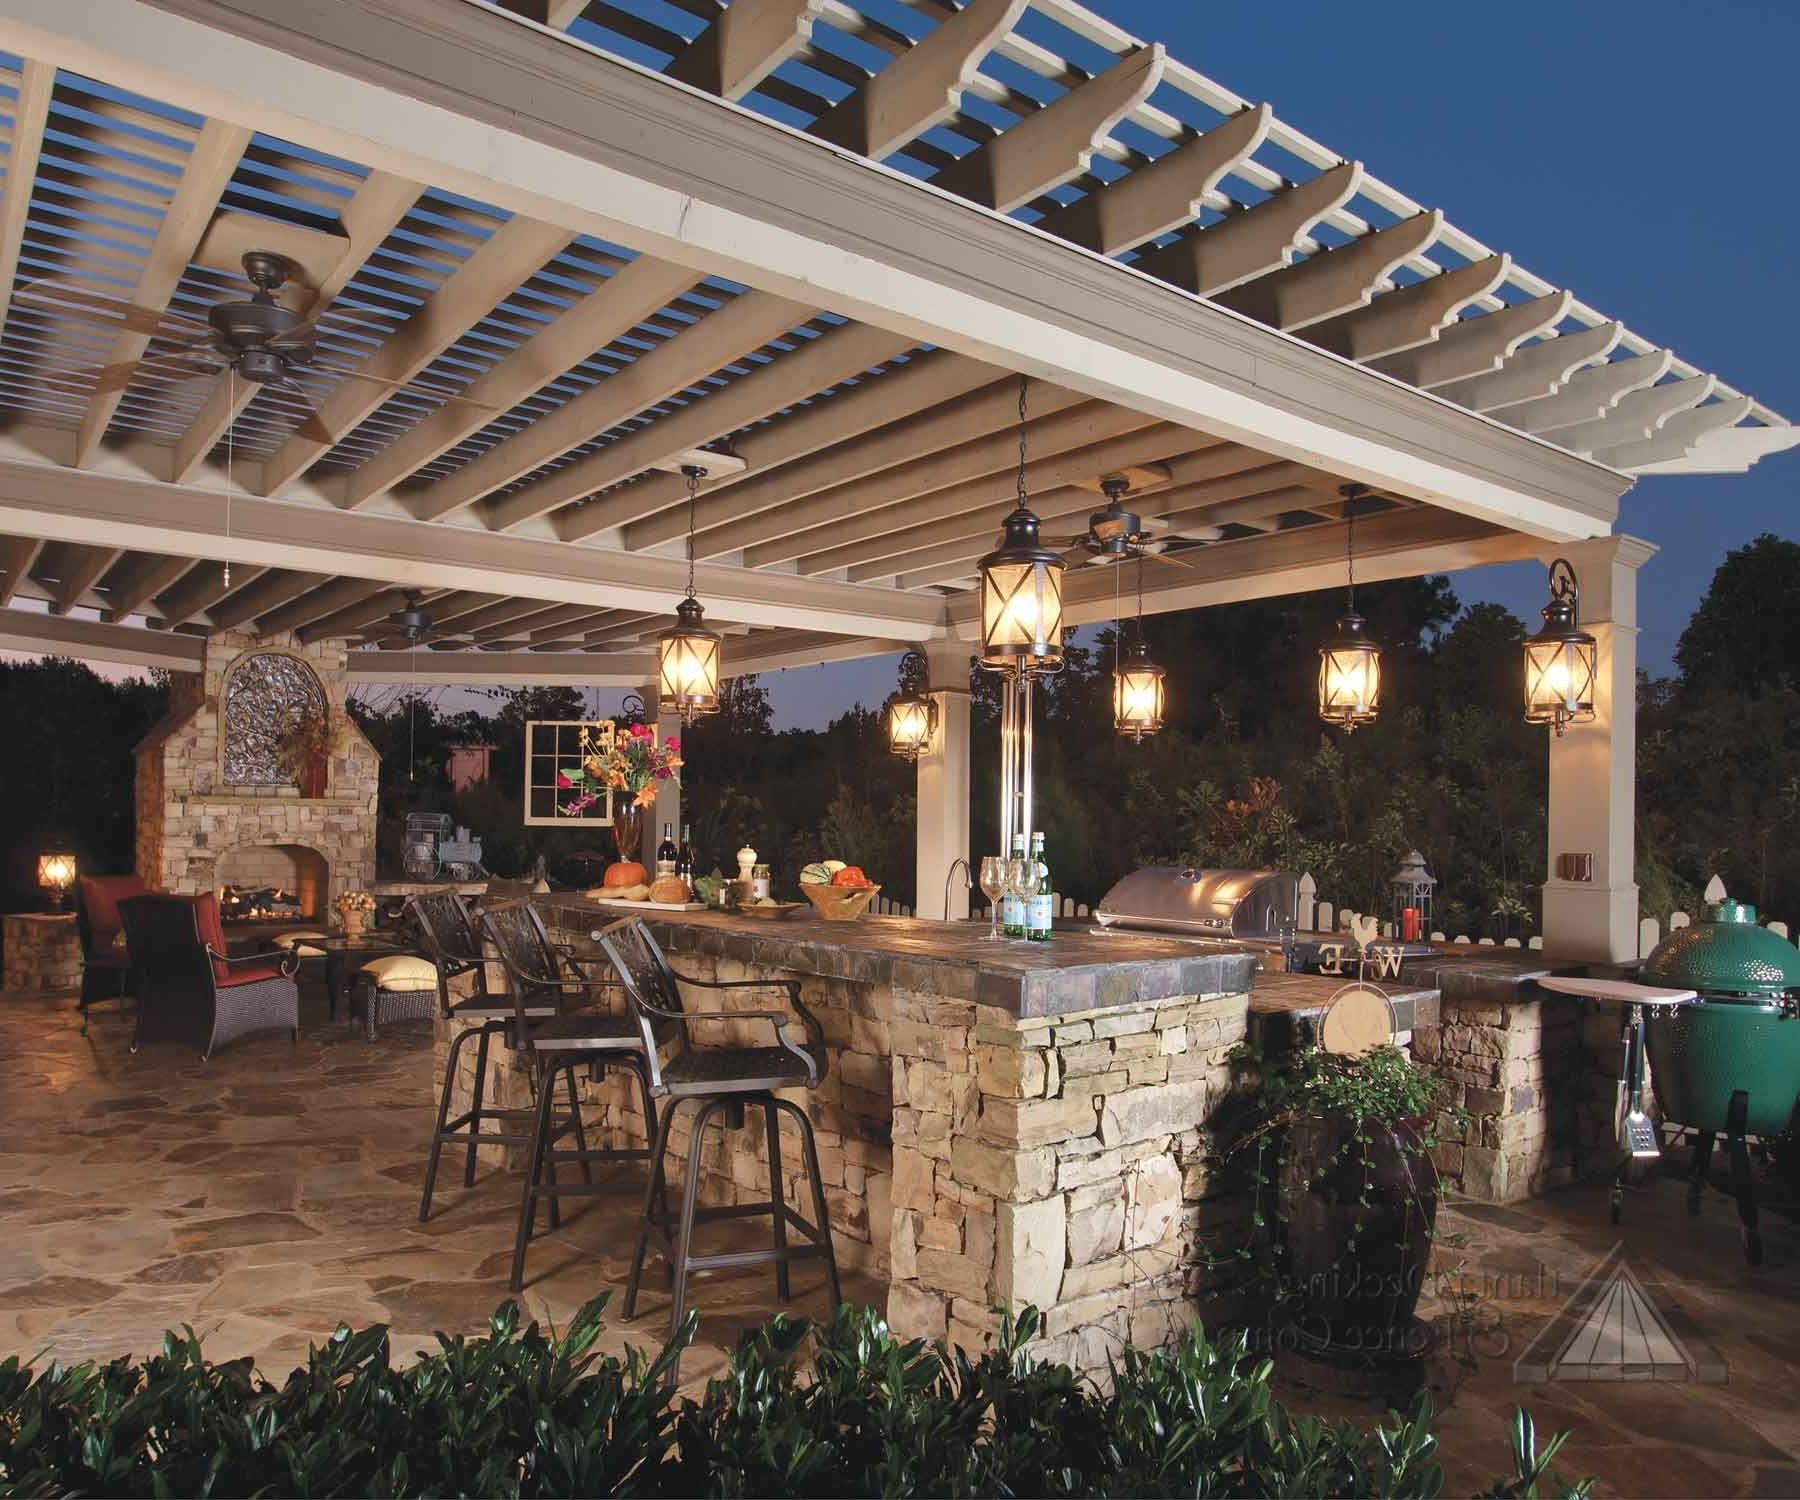 Most Up To Date Outdoor Ceiling Fans For Pergola Throughout The Serving Area May Have A Raised Bar With Stools To Allow Guests (View 10 of 20)